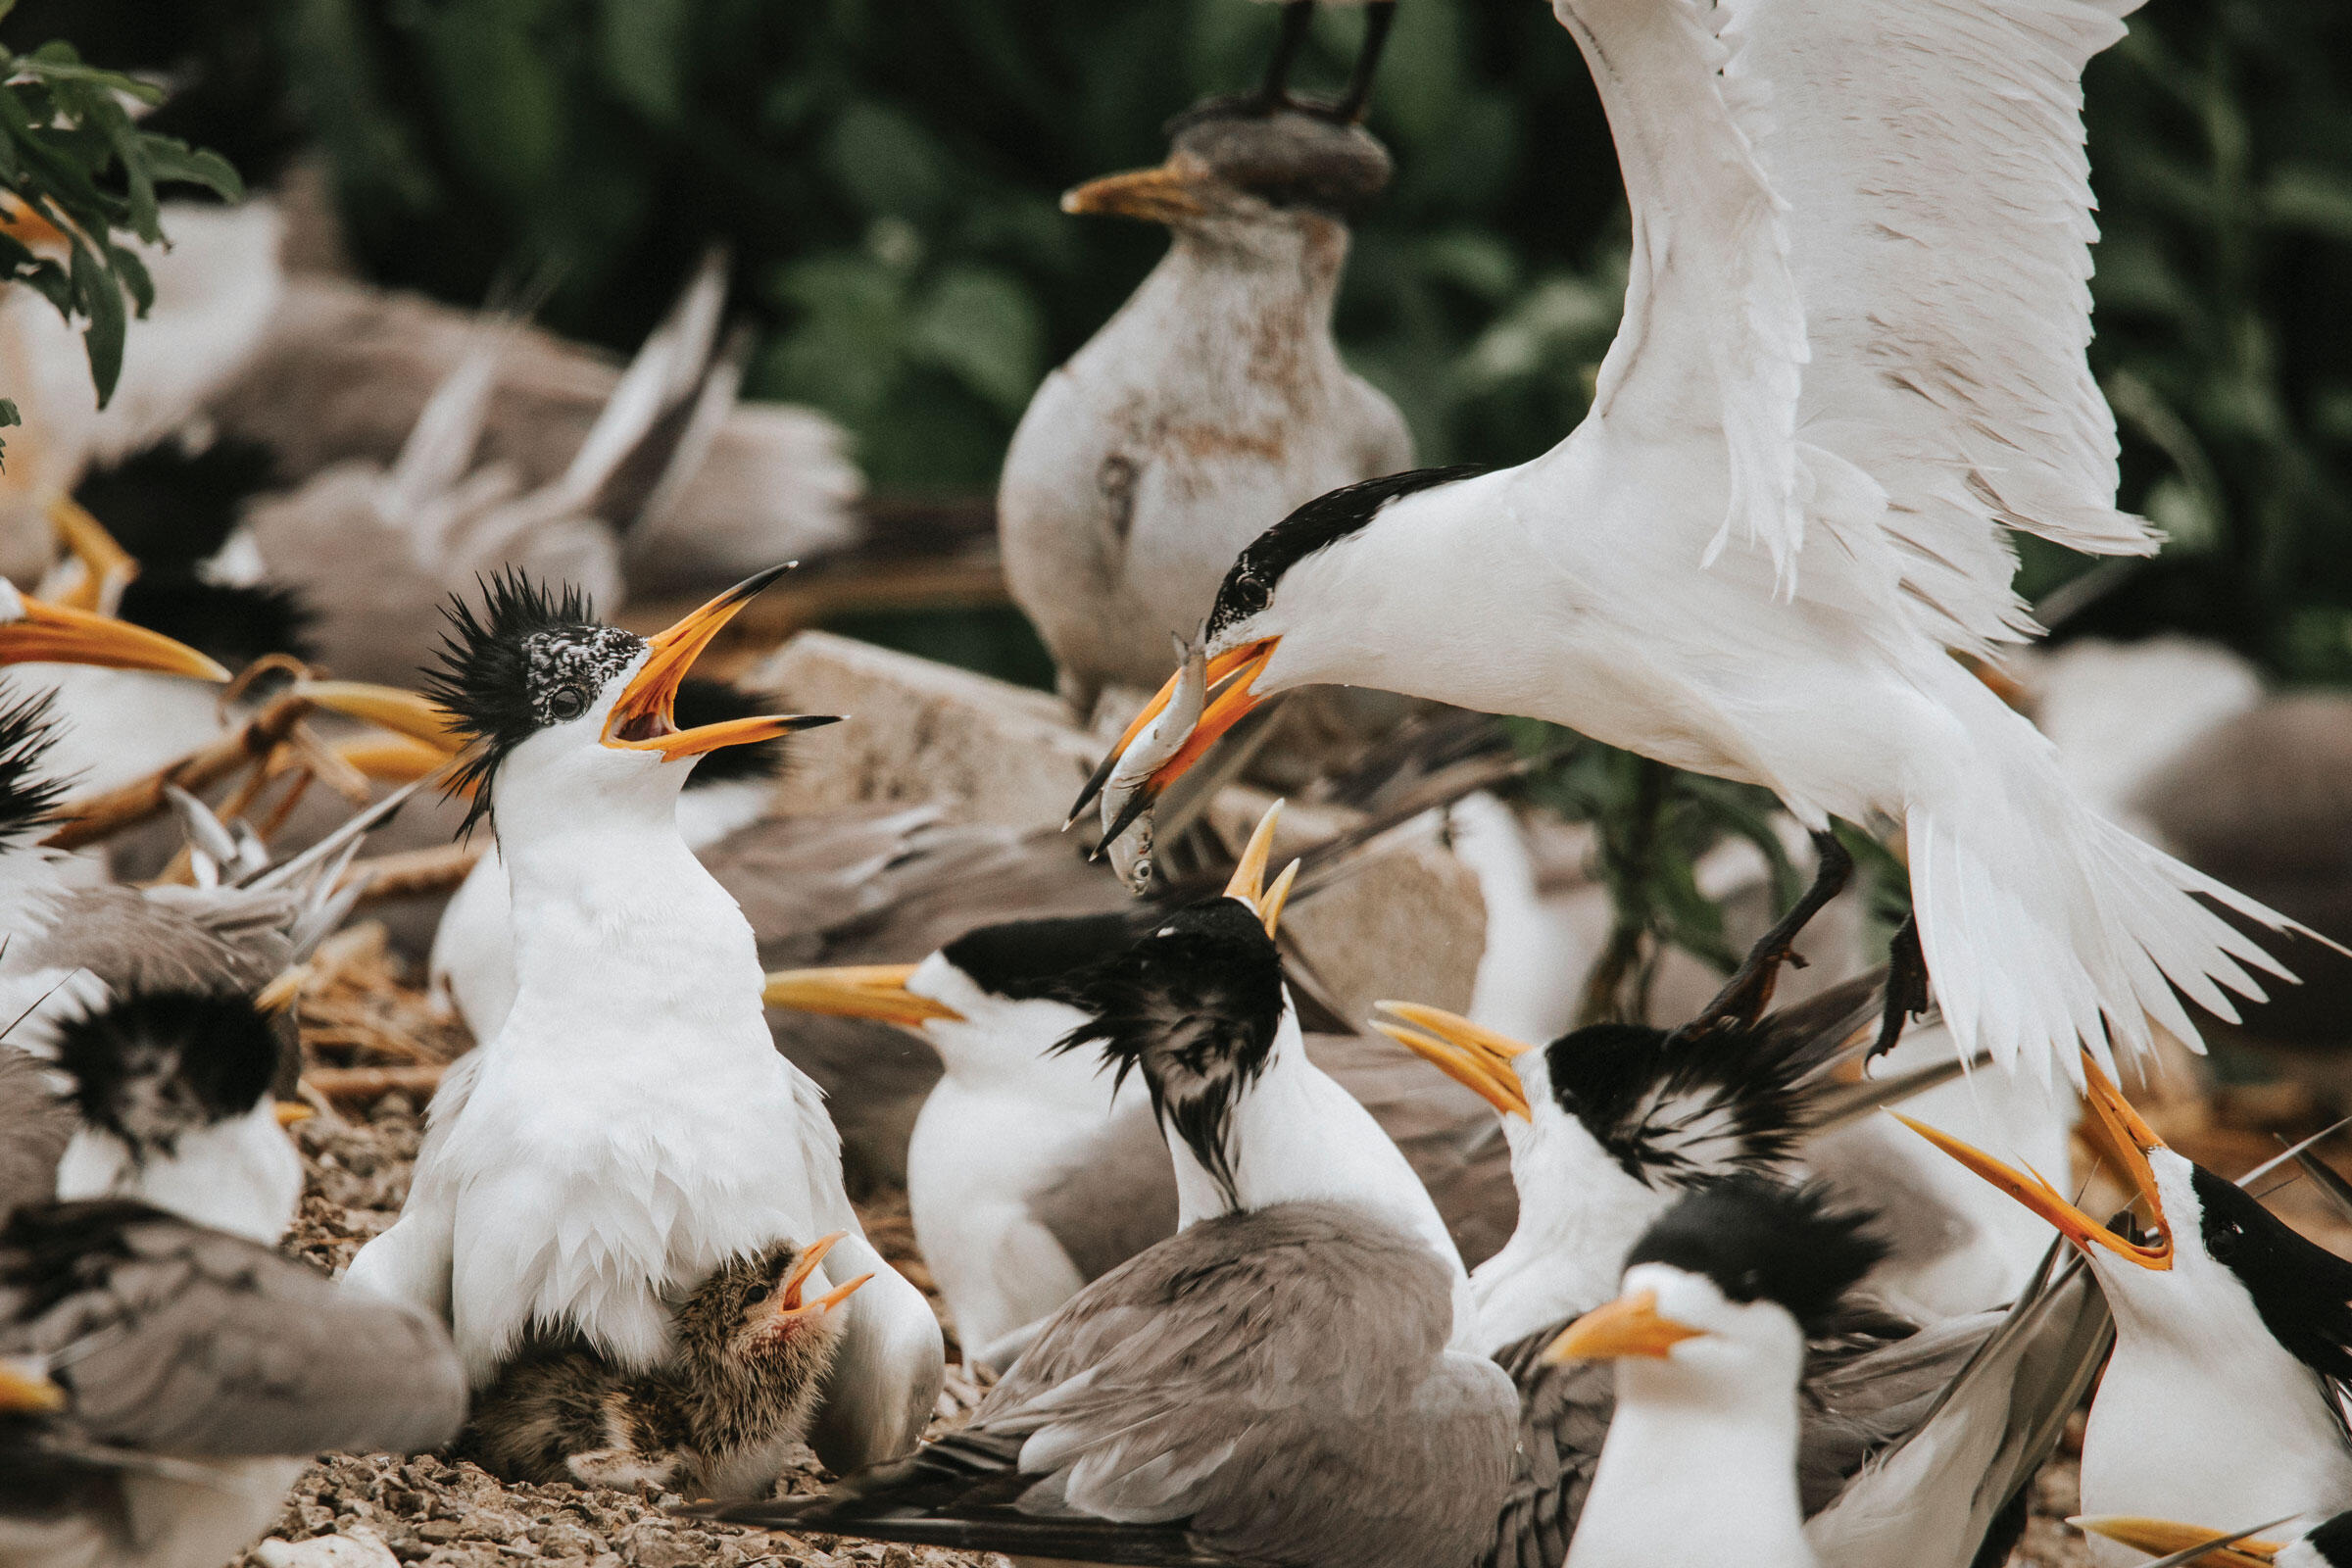 A Chinese Crested Tern returns to the nest after a successful hunt at sea, the fish it caught at the ready to feed to its chick. Morgan Heim